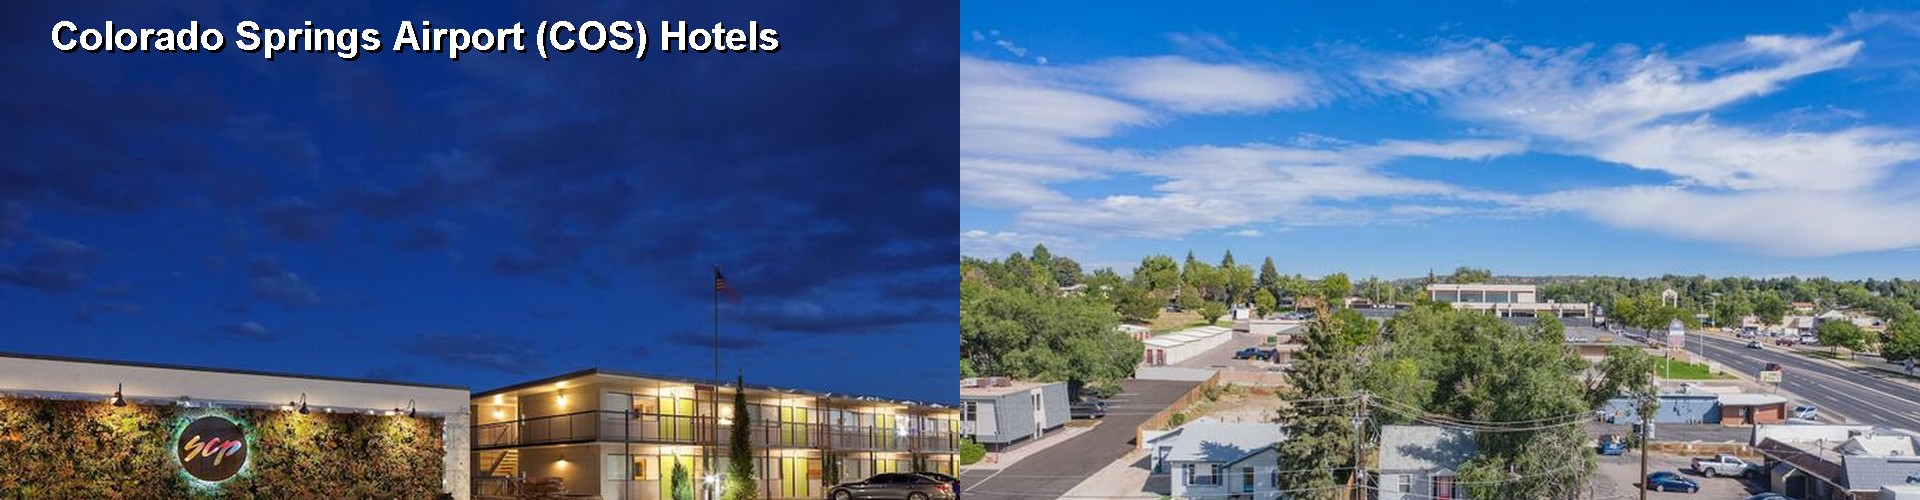 5 Best Hotels near Colorado Springs Airport (COS)